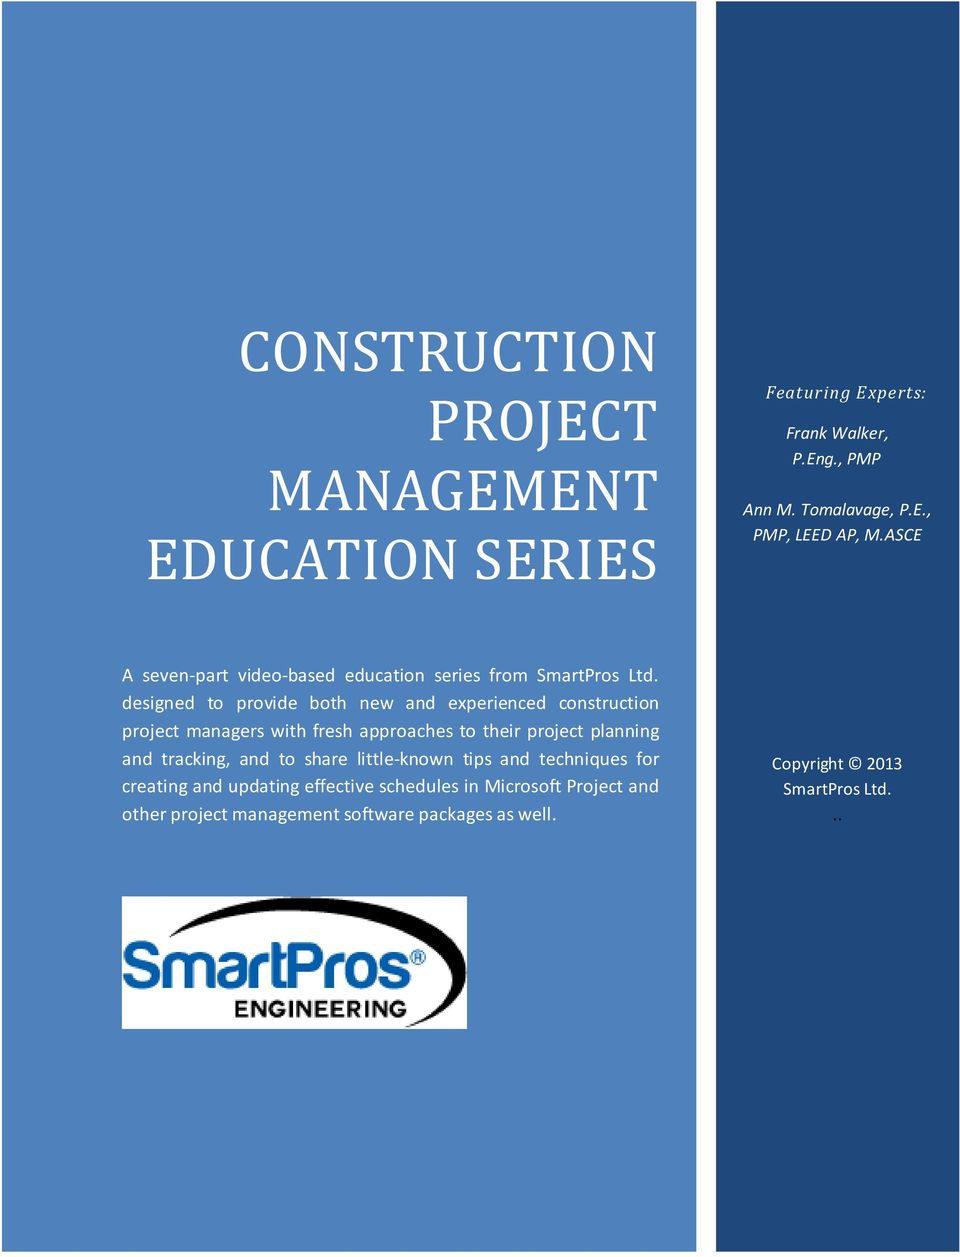 designed to provide both new and experienced construction project managers with fresh approaches to their project planning and